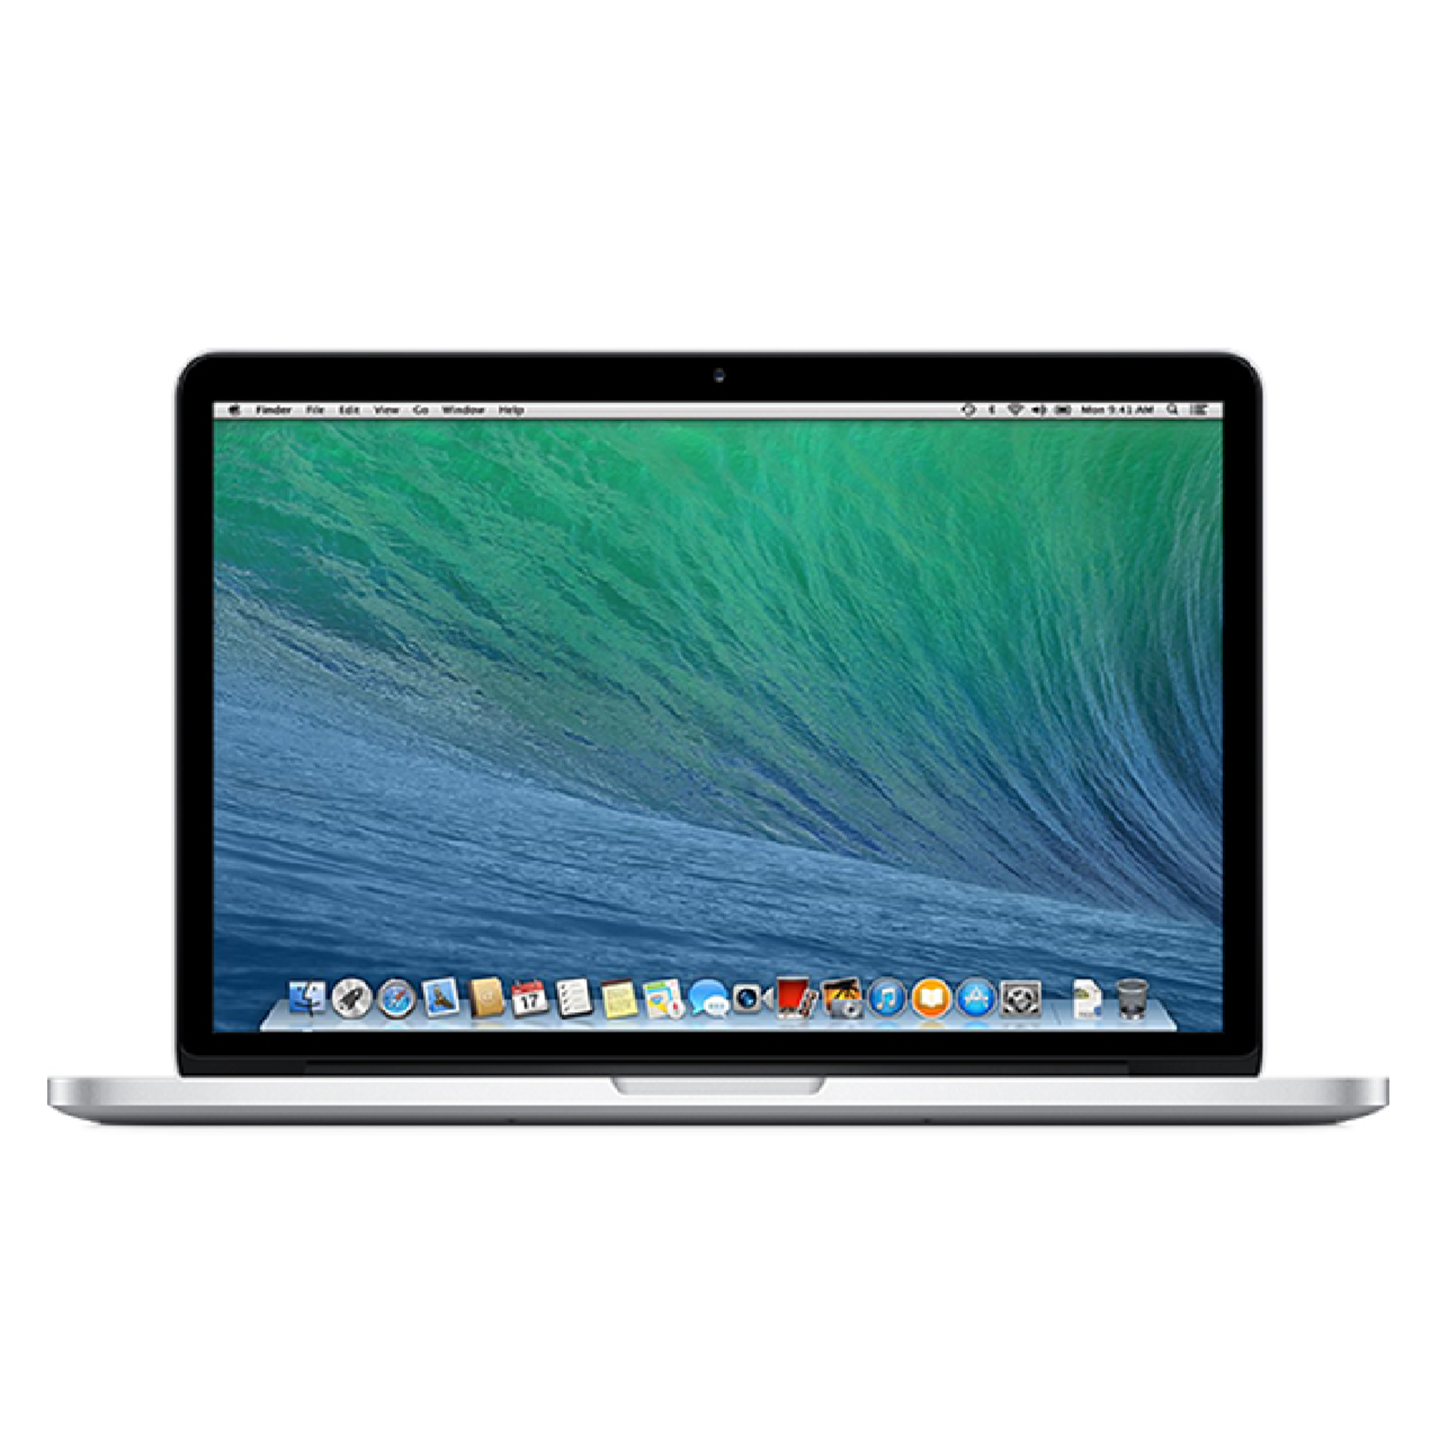 MacBook Pro (Retina, 13-inch, Late2013)Core i5/8GB/SSD256GB E783